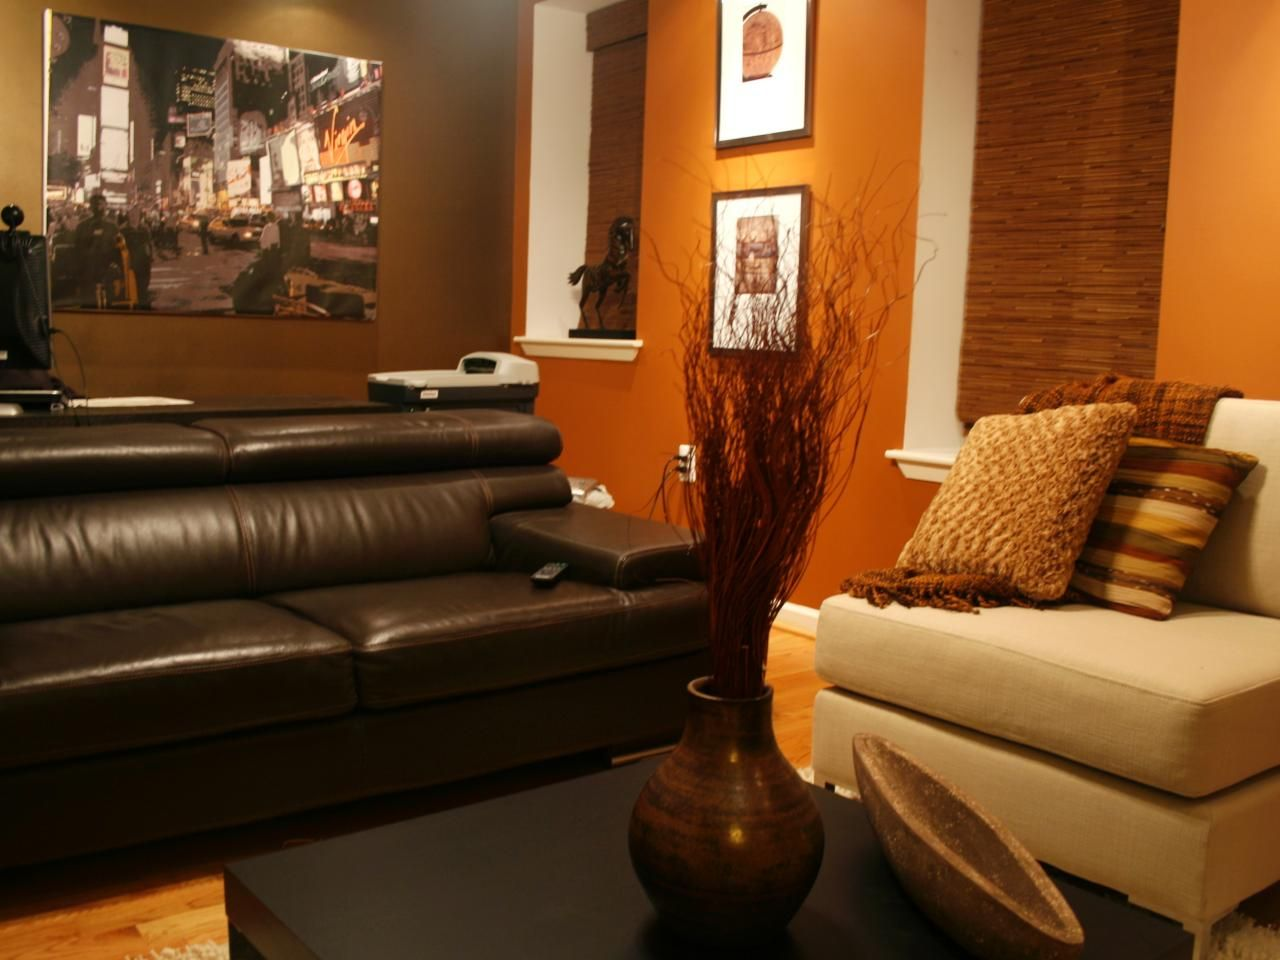 Orange And Brown Asian Style Living Room Burnt Orange Living Room Living Room Orange Burnt Orange Living Room Decor #orange #accessories #for #living #room